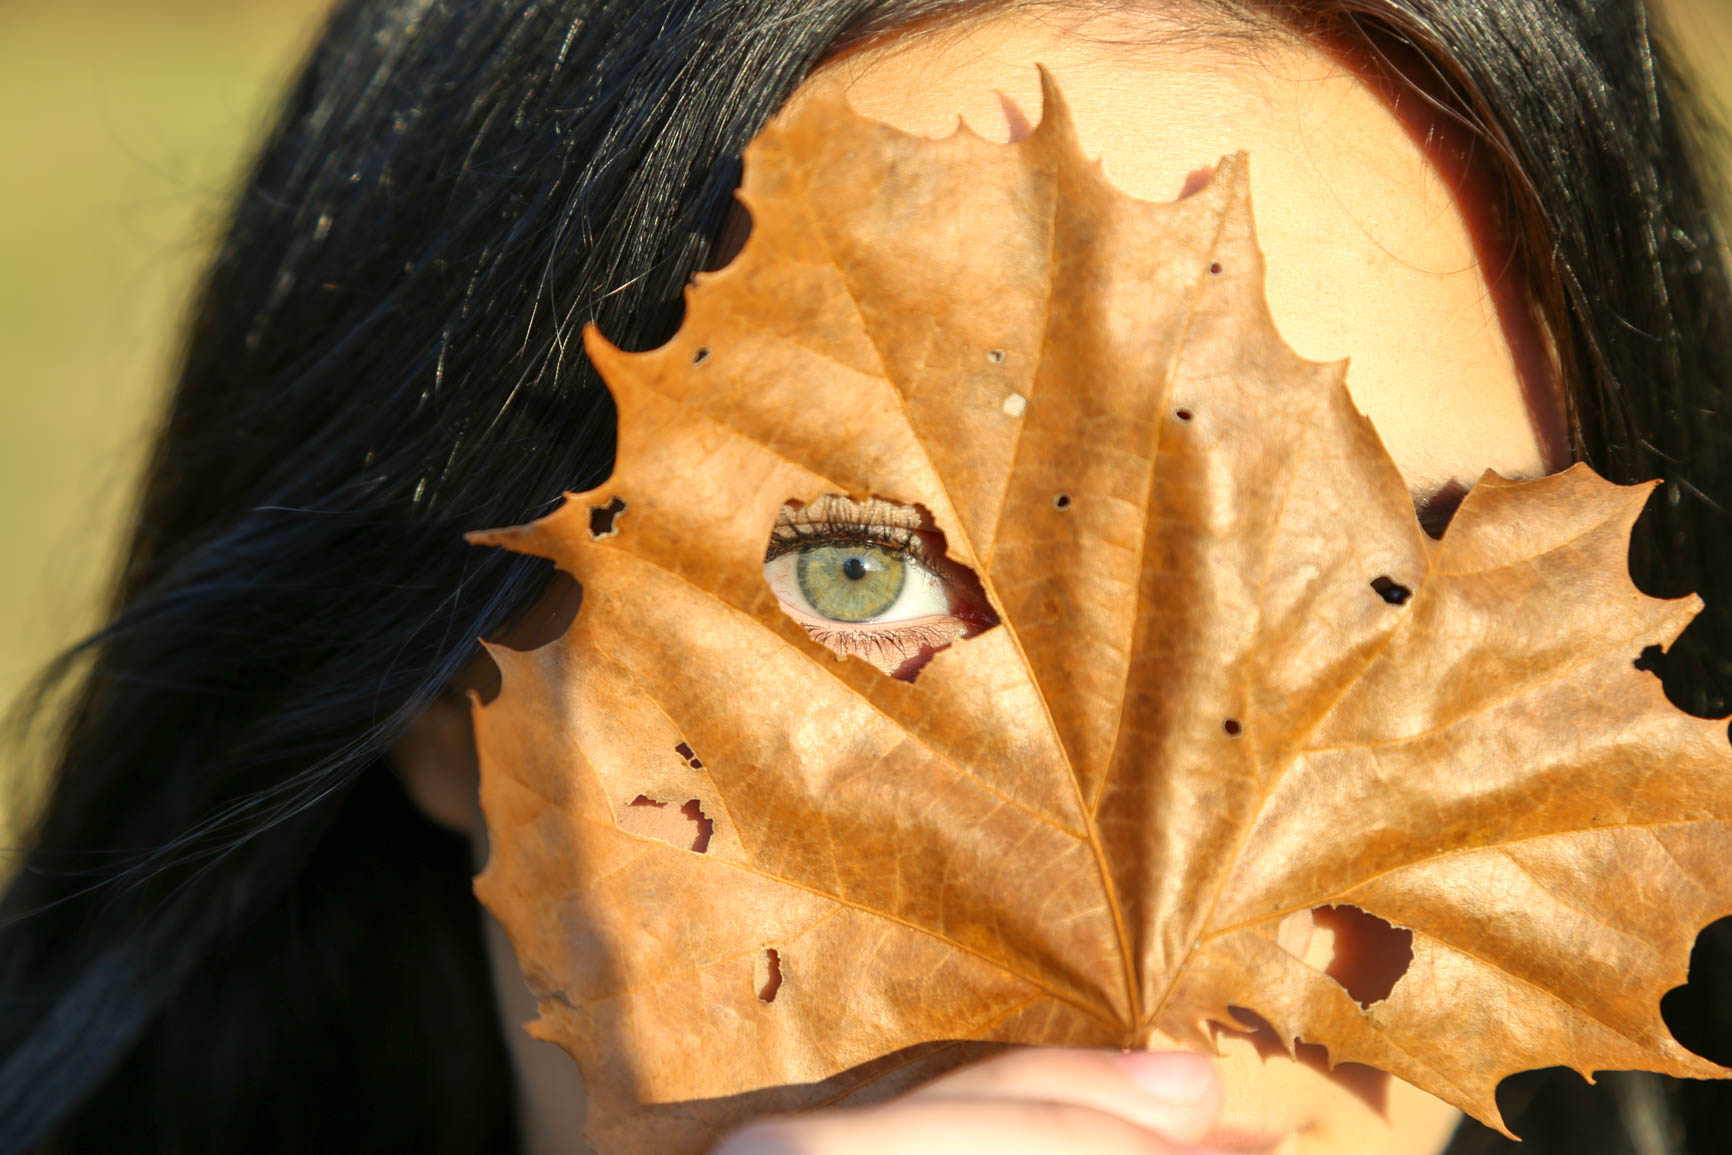 woman's face peeking through a crumpled leaf